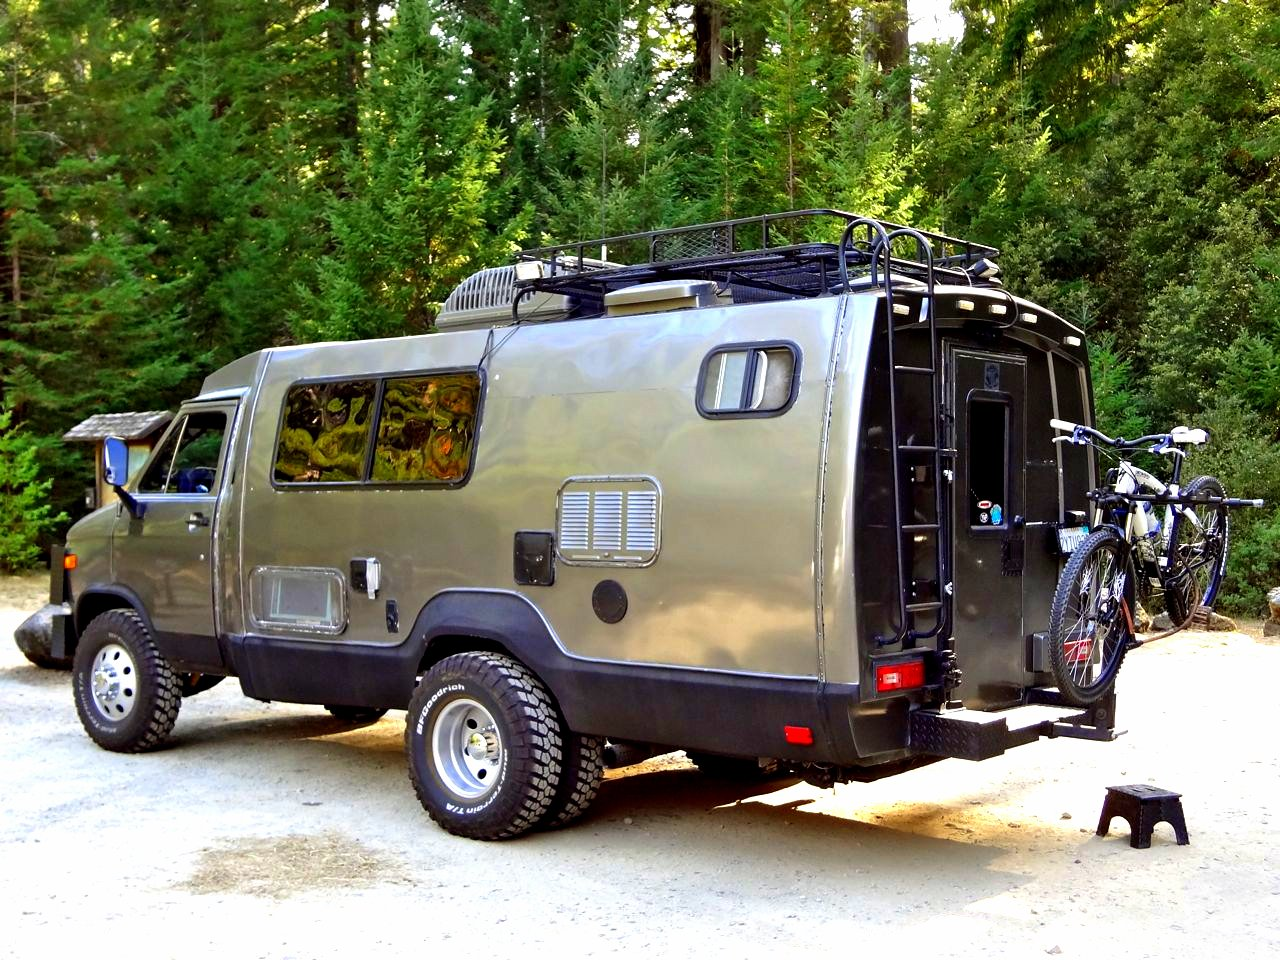 Sprinter Van For Sale Craigslist >> The Flying Tortoise: When You're Seriously Serious About ...